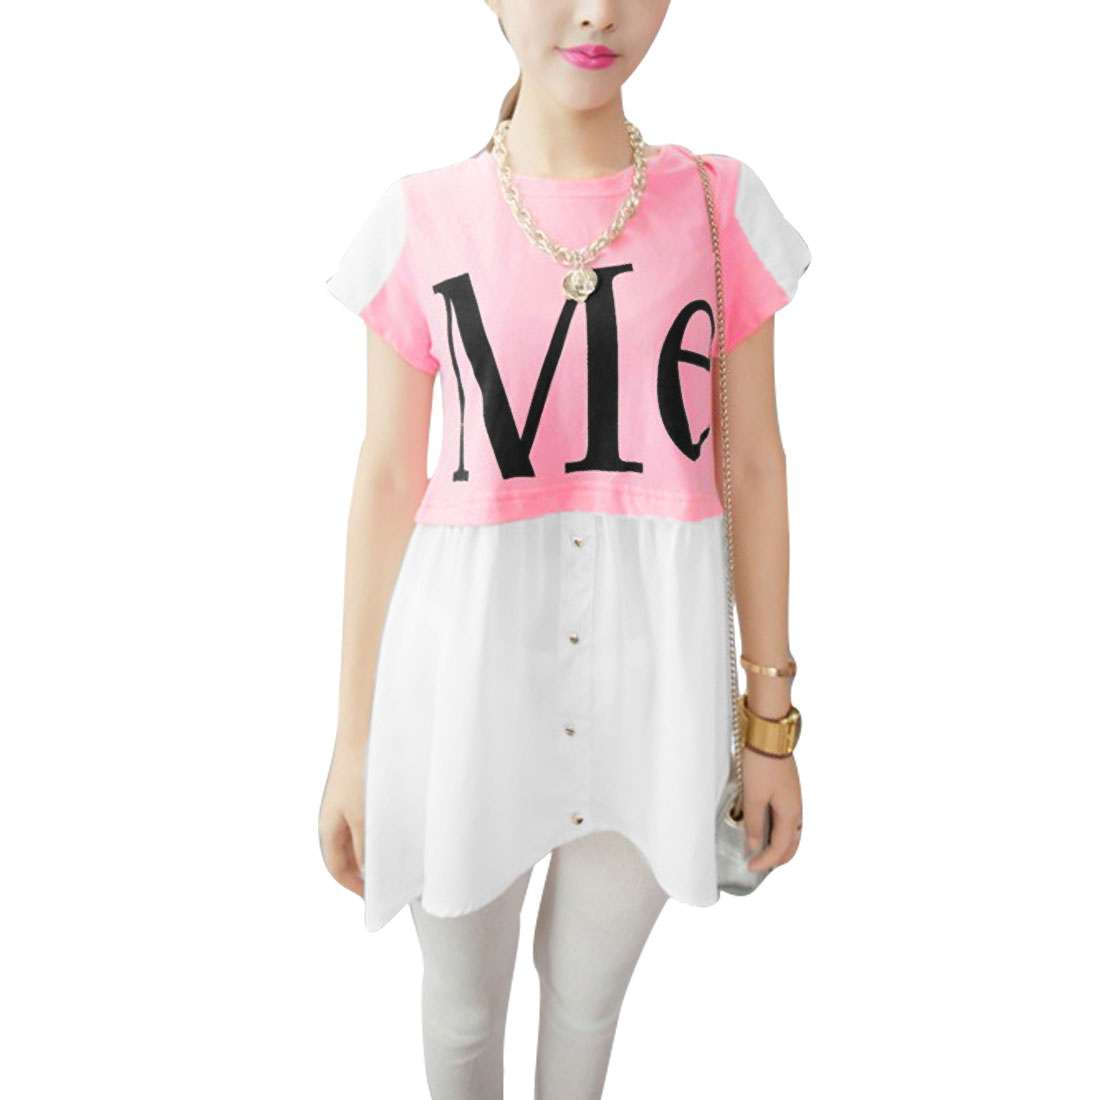 S Women Short Sleeve Round Neck Letters Pattern Tunic Shirt Pink White